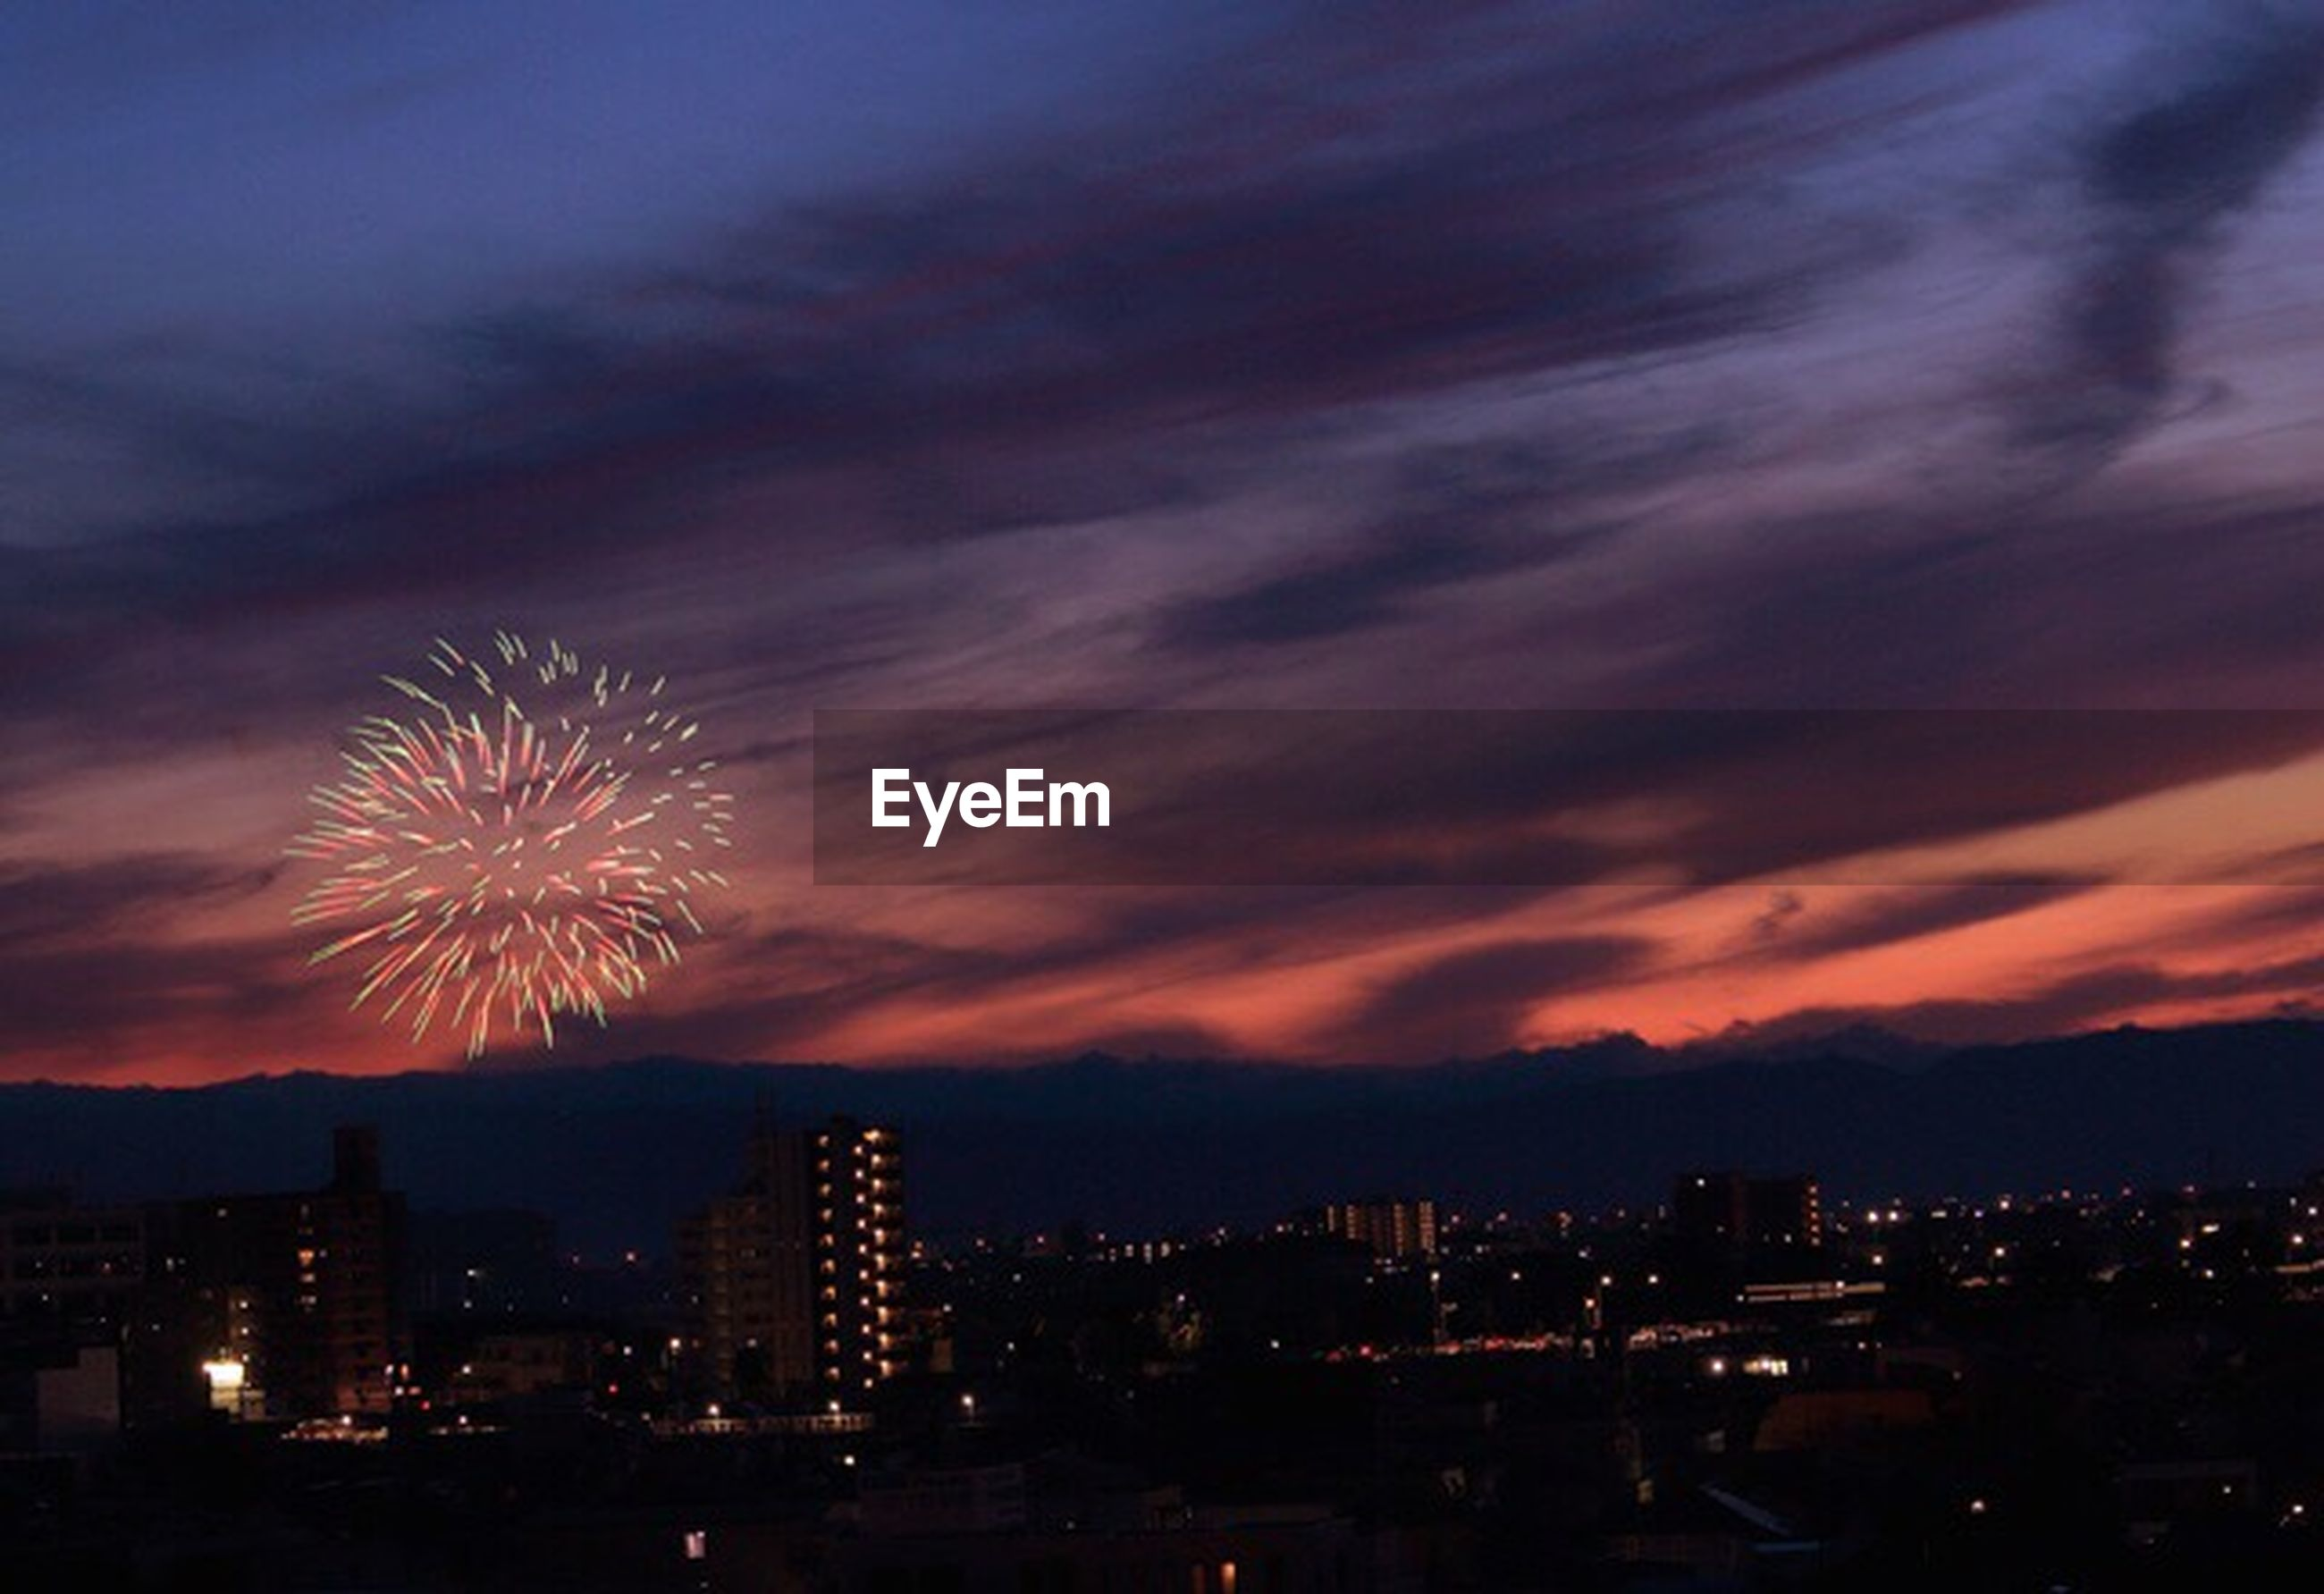 illuminated, night, sky, building exterior, cityscape, city, built structure, architecture, firework display, exploding, cloud - sky, long exposure, dramatic sky, glowing, outdoors, silhouette, firework - man made object, sunset, no people, dusk